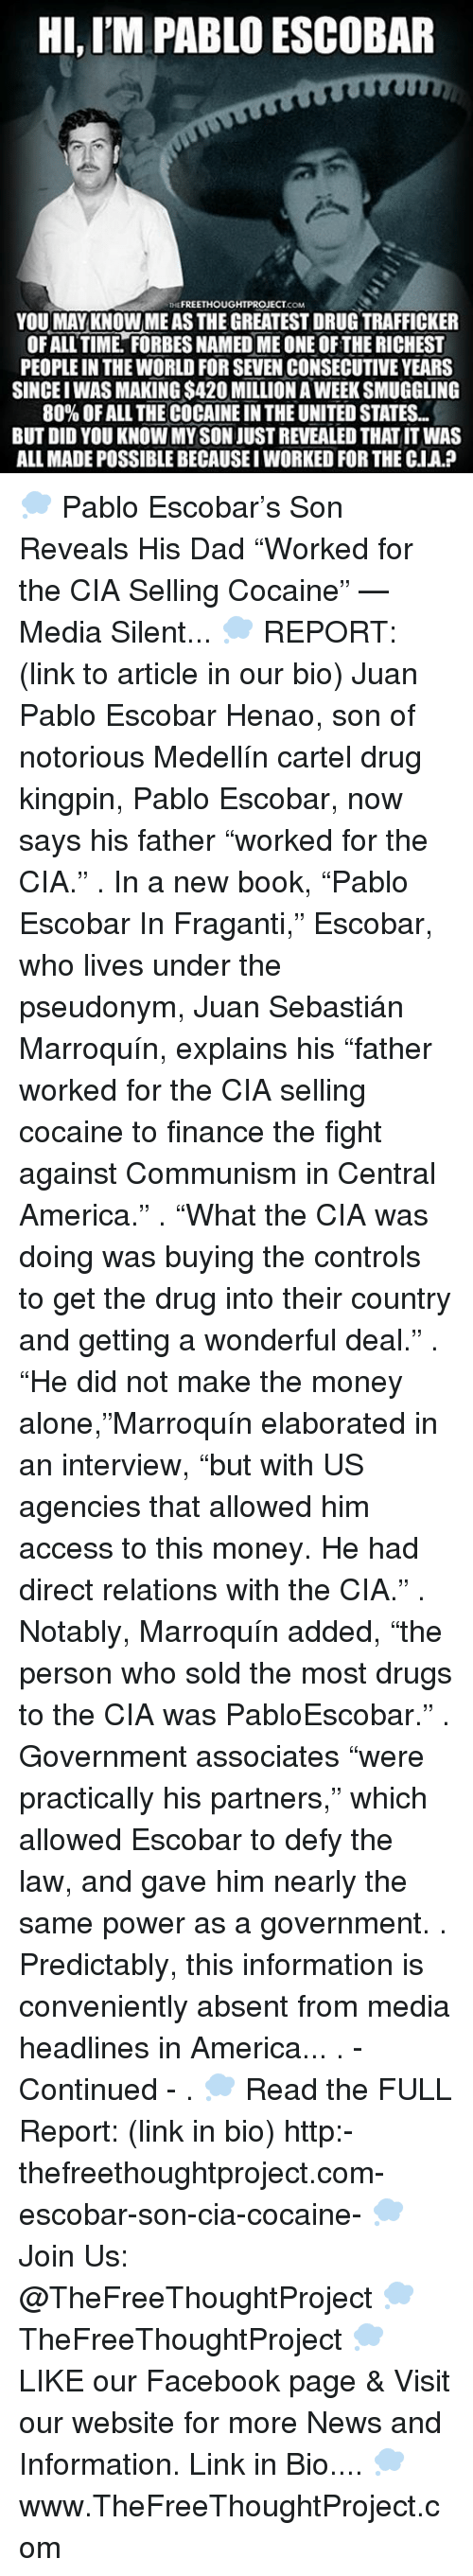 "Being Alone, America, and Dad: HI, ITM PABLO ESCOBAR  FREETHOUGHTPROJECT  COM  YOU MAY KNOW MEAS THE GREATESTDRUGTRAFFICKER  OFALL TIME FORBES NAMEDME ONE OF THE RICHEST  PEOPLEIN THE WORLD FOR SEVEN CONSECUTIVE YEARS  SINCEIWAS MAKING$420 MILLION A WEEK SMUGGLING  80% OFALL THE COCAINEINTHE UNITED STATES..  BUT DID YOU KNOW MYSON JUSTREVEALED THAT IT WAS  ALL MADEPOSSIBLE BECAUSEIWORKED FOR THE C.IA.P 💭 Pablo Escobar's Son Reveals His Dad ""Worked for the CIA Selling Cocaine"" — Media Silent... 💭 REPORT: (link to article in our bio) Juan Pablo Escobar Henao, son of notorious Medellín cartel drug kingpin, Pablo Escobar, now says his father ""worked for the CIA."" . In a new book, ""Pablo Escobar In Fraganti,"" Escobar, who lives under the pseudonym, Juan Sebastián Marroquín, explains his ""father worked for the CIA selling cocaine to finance the fight against Communism in Central America."" . ""What the CIA was doing was buying the controls to get the drug into their country and getting a wonderful deal."" . ""He did not make the money alone,""Marroquín elaborated in an interview, ""but with US agencies that allowed him access to this money. He had direct relations with the CIA."" . Notably, Marroquín added, ""the person who sold the most drugs to the CIA was PabloEscobar."" . Government associates ""were practically his partners,"" which allowed Escobar to defy the law, and gave him nearly the same power as a government. . Predictably, this information is conveniently absent from media headlines in America... . - Continued - . 💭 Read the FULL Report: (link in bio) http:-thefreethoughtproject.com-escobar-son-cia-cocaine- 💭 Join Us: @TheFreeThoughtProject 💭 TheFreeThoughtProject 💭 LIKE our Facebook page & Visit our website for more News and Information. Link in Bio.... 💭 www.TheFreeThoughtProject.com"